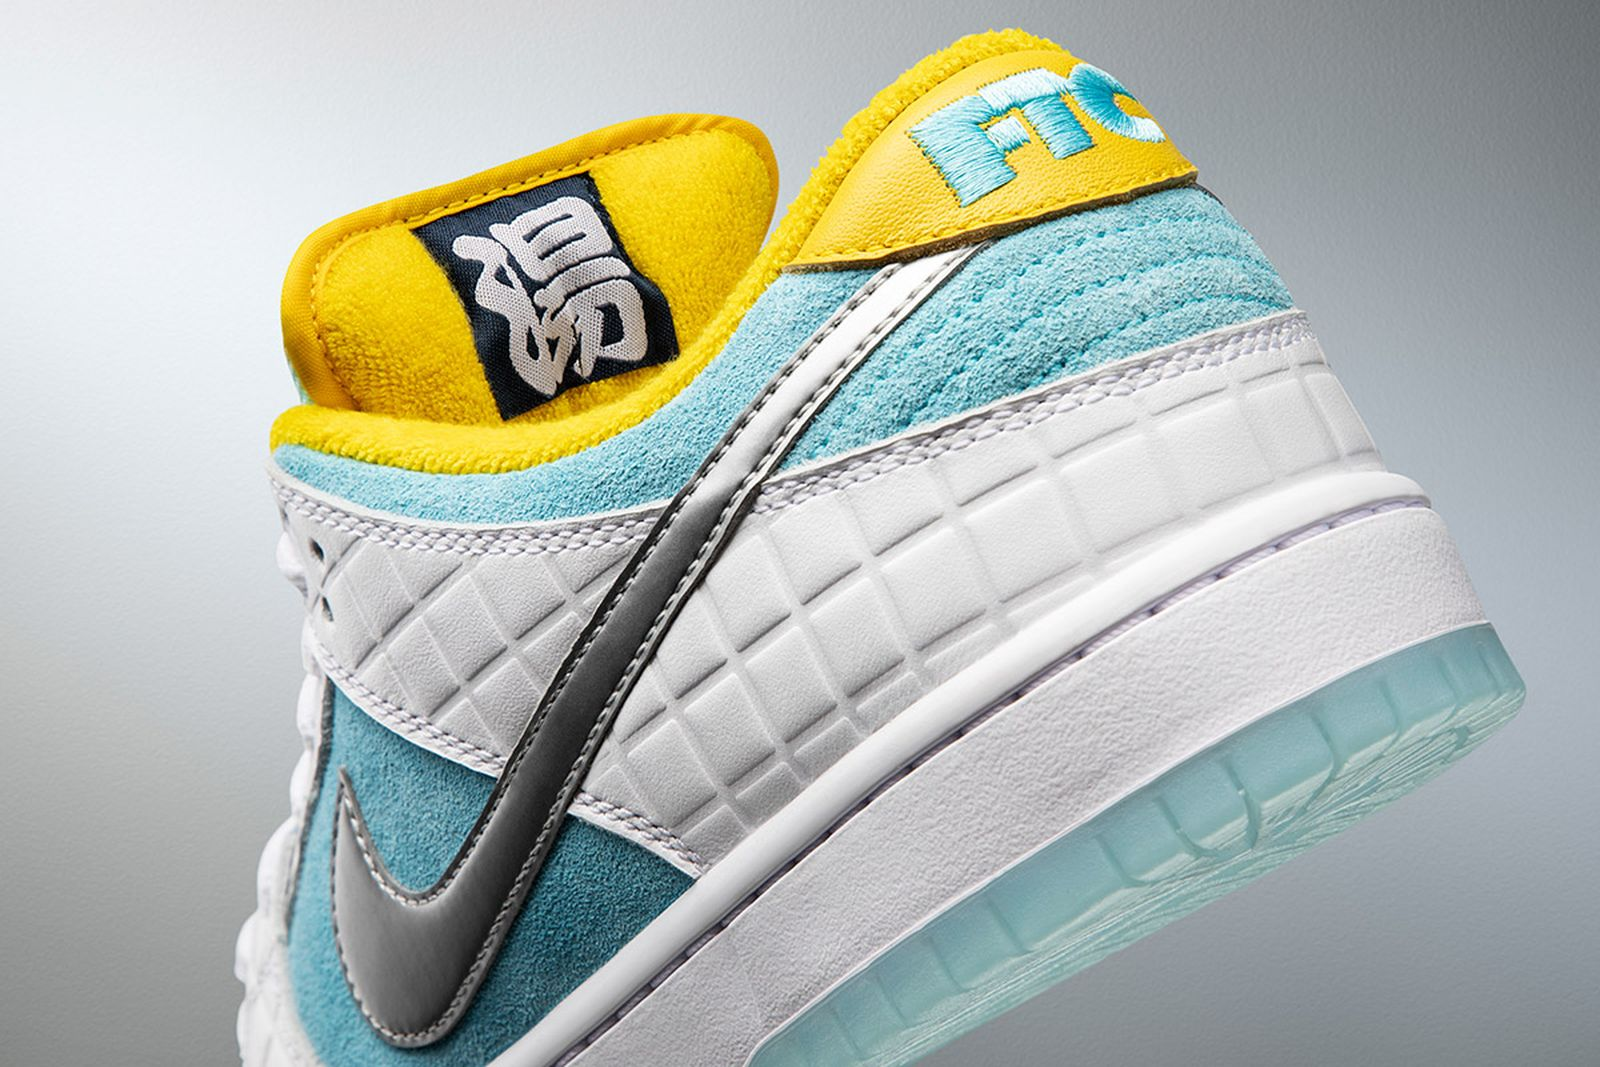 nike-sb-dunk-olympics-pack-release-date-price-07